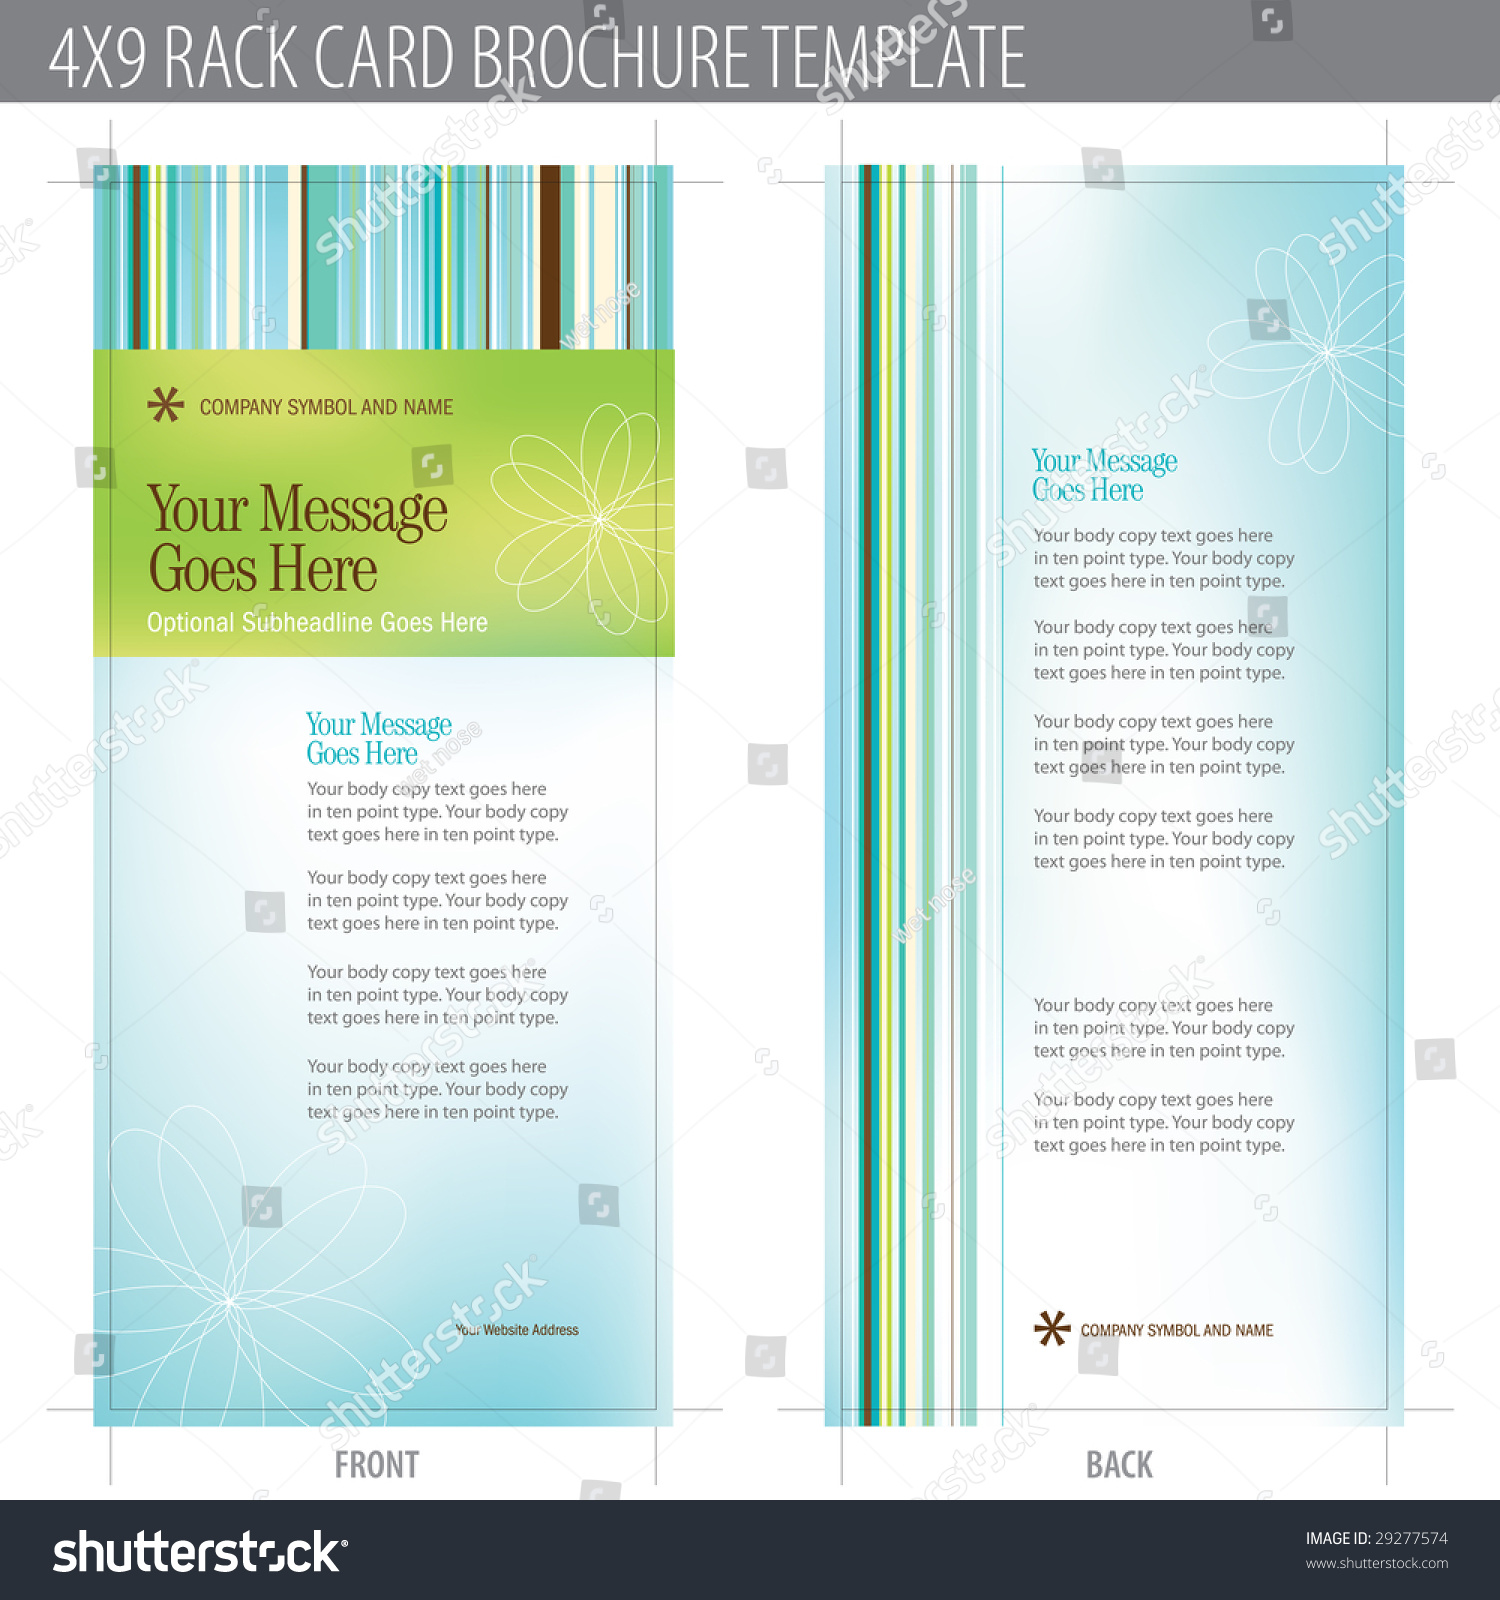 4x9 rack card brochure template includes cropmarks bleeds and keyline elements in layers. Black Bedroom Furniture Sets. Home Design Ideas